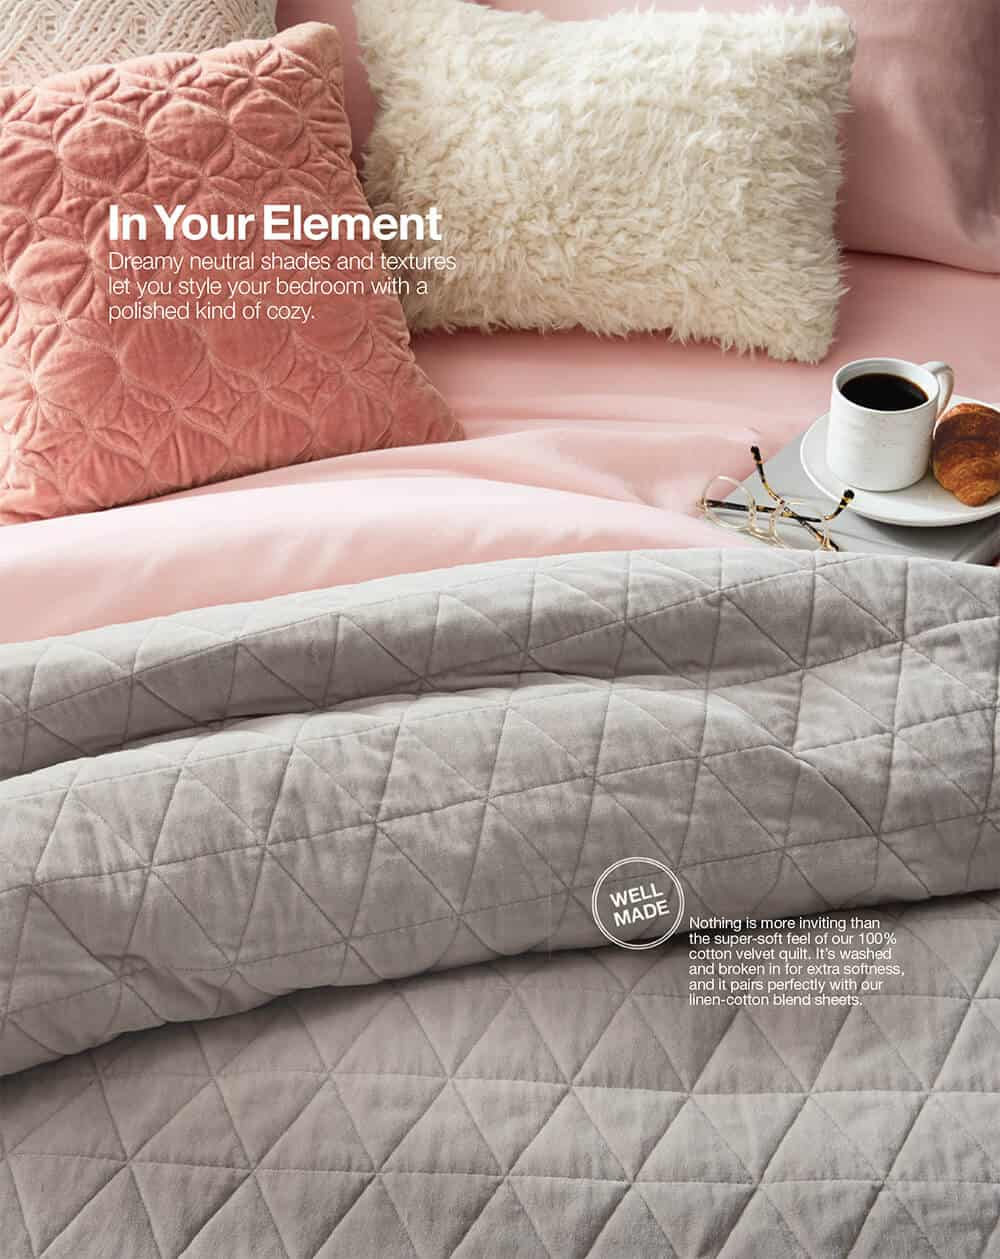 target-fall-style-catalogue-preview-emily-henderson-design-21